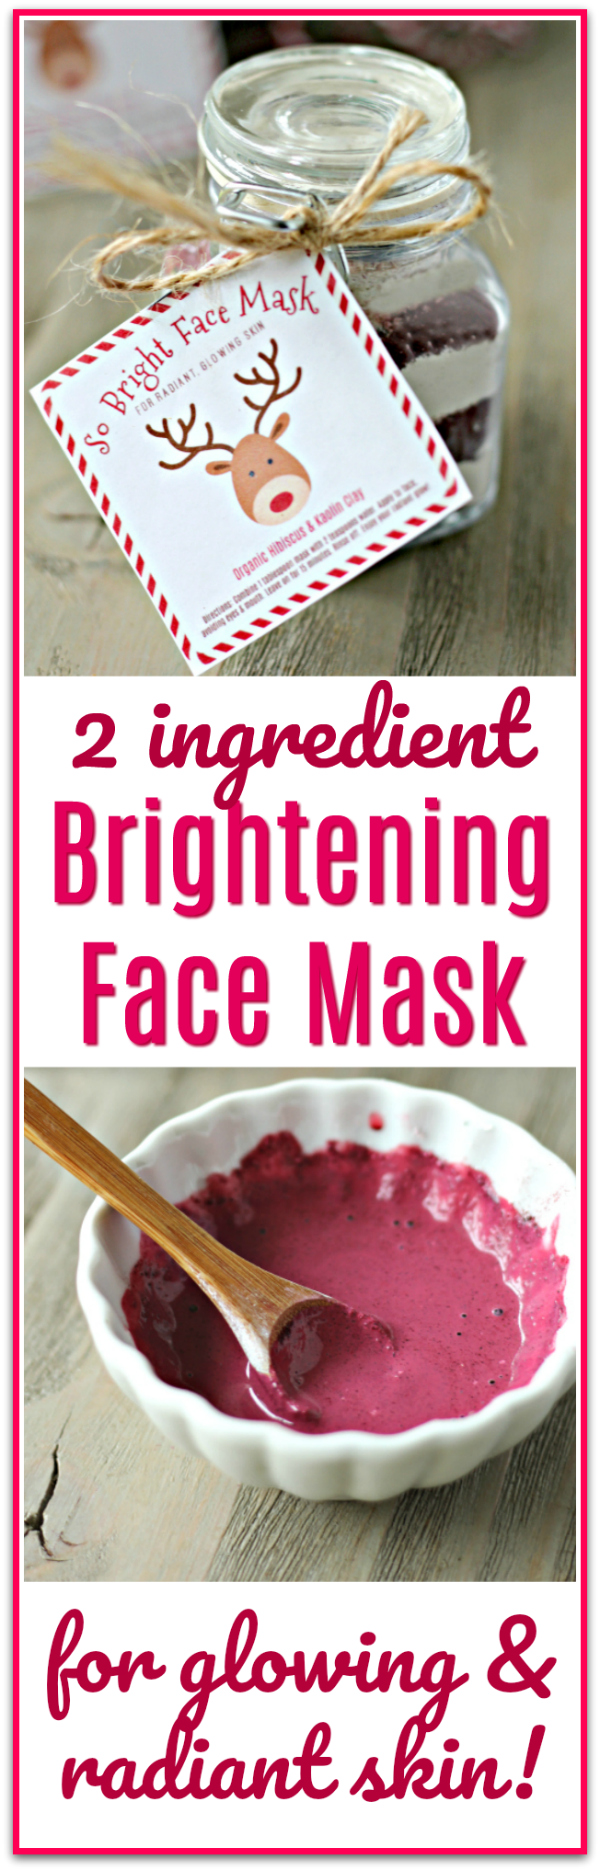 Brightening Face Mask Free Printable Labels for glowing skin